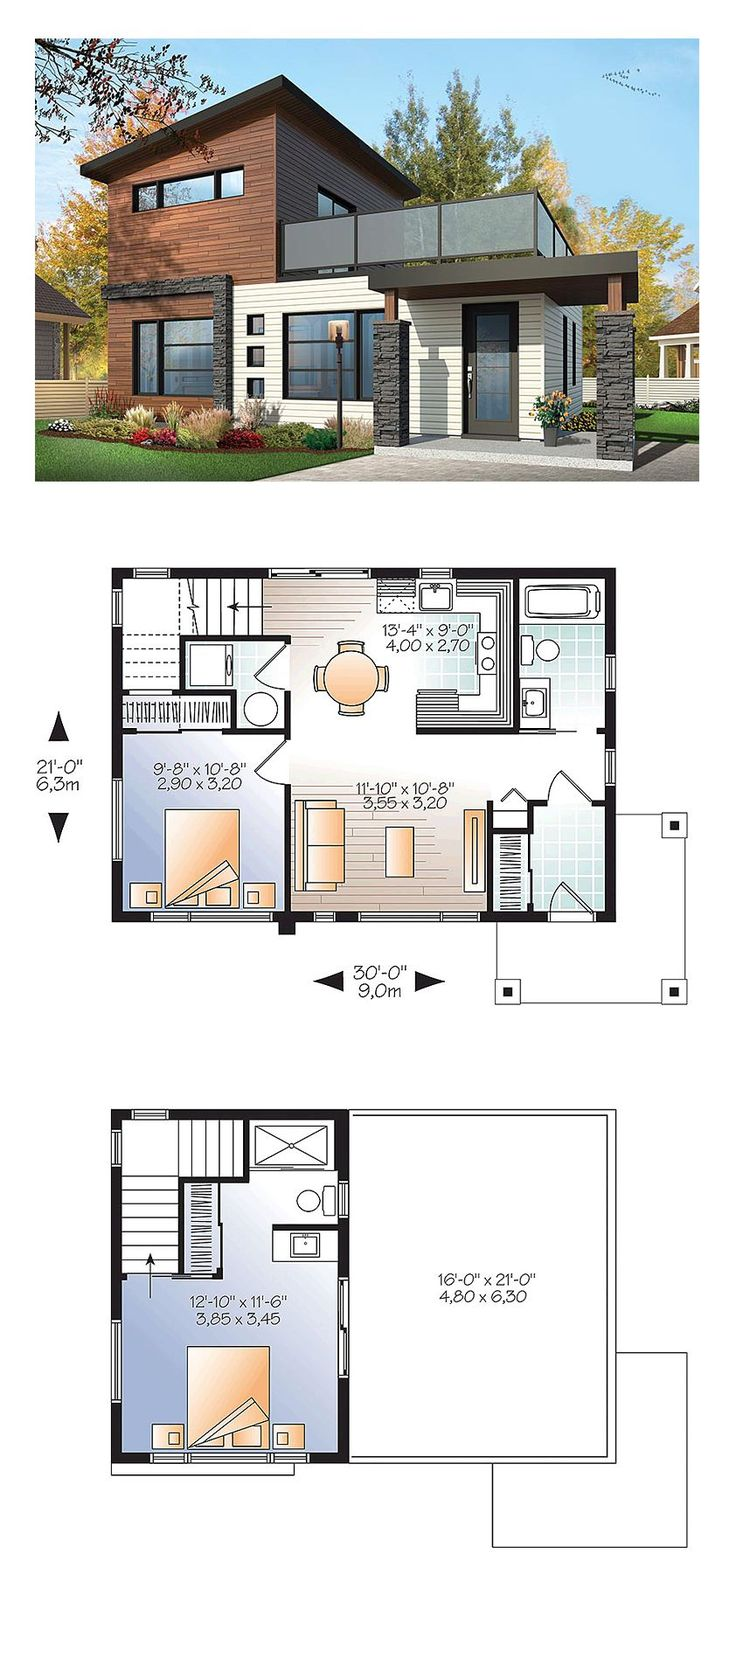 8 x 10 master bathroom layout - Contemporary Modern House Plan 76461